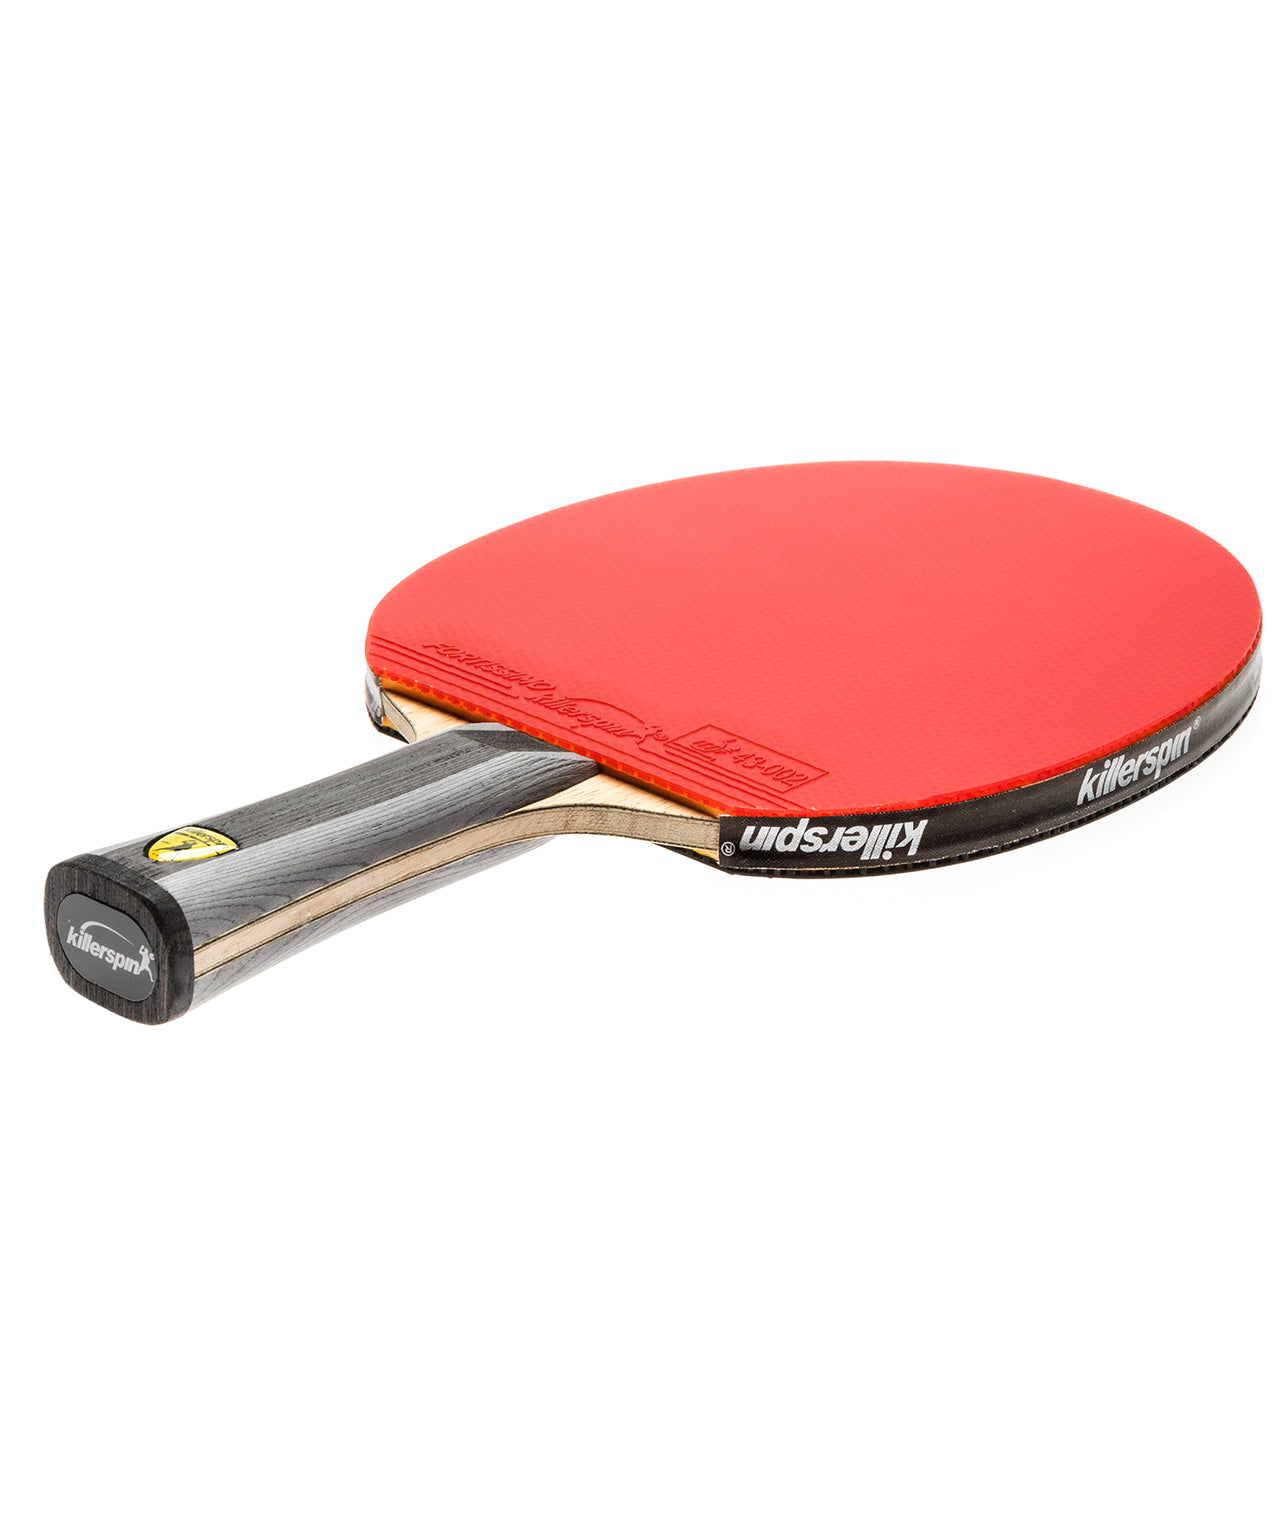 Killerspin Ping Pong Paddle Diamond TC Premium - Flared Red Fortissimo Rubber